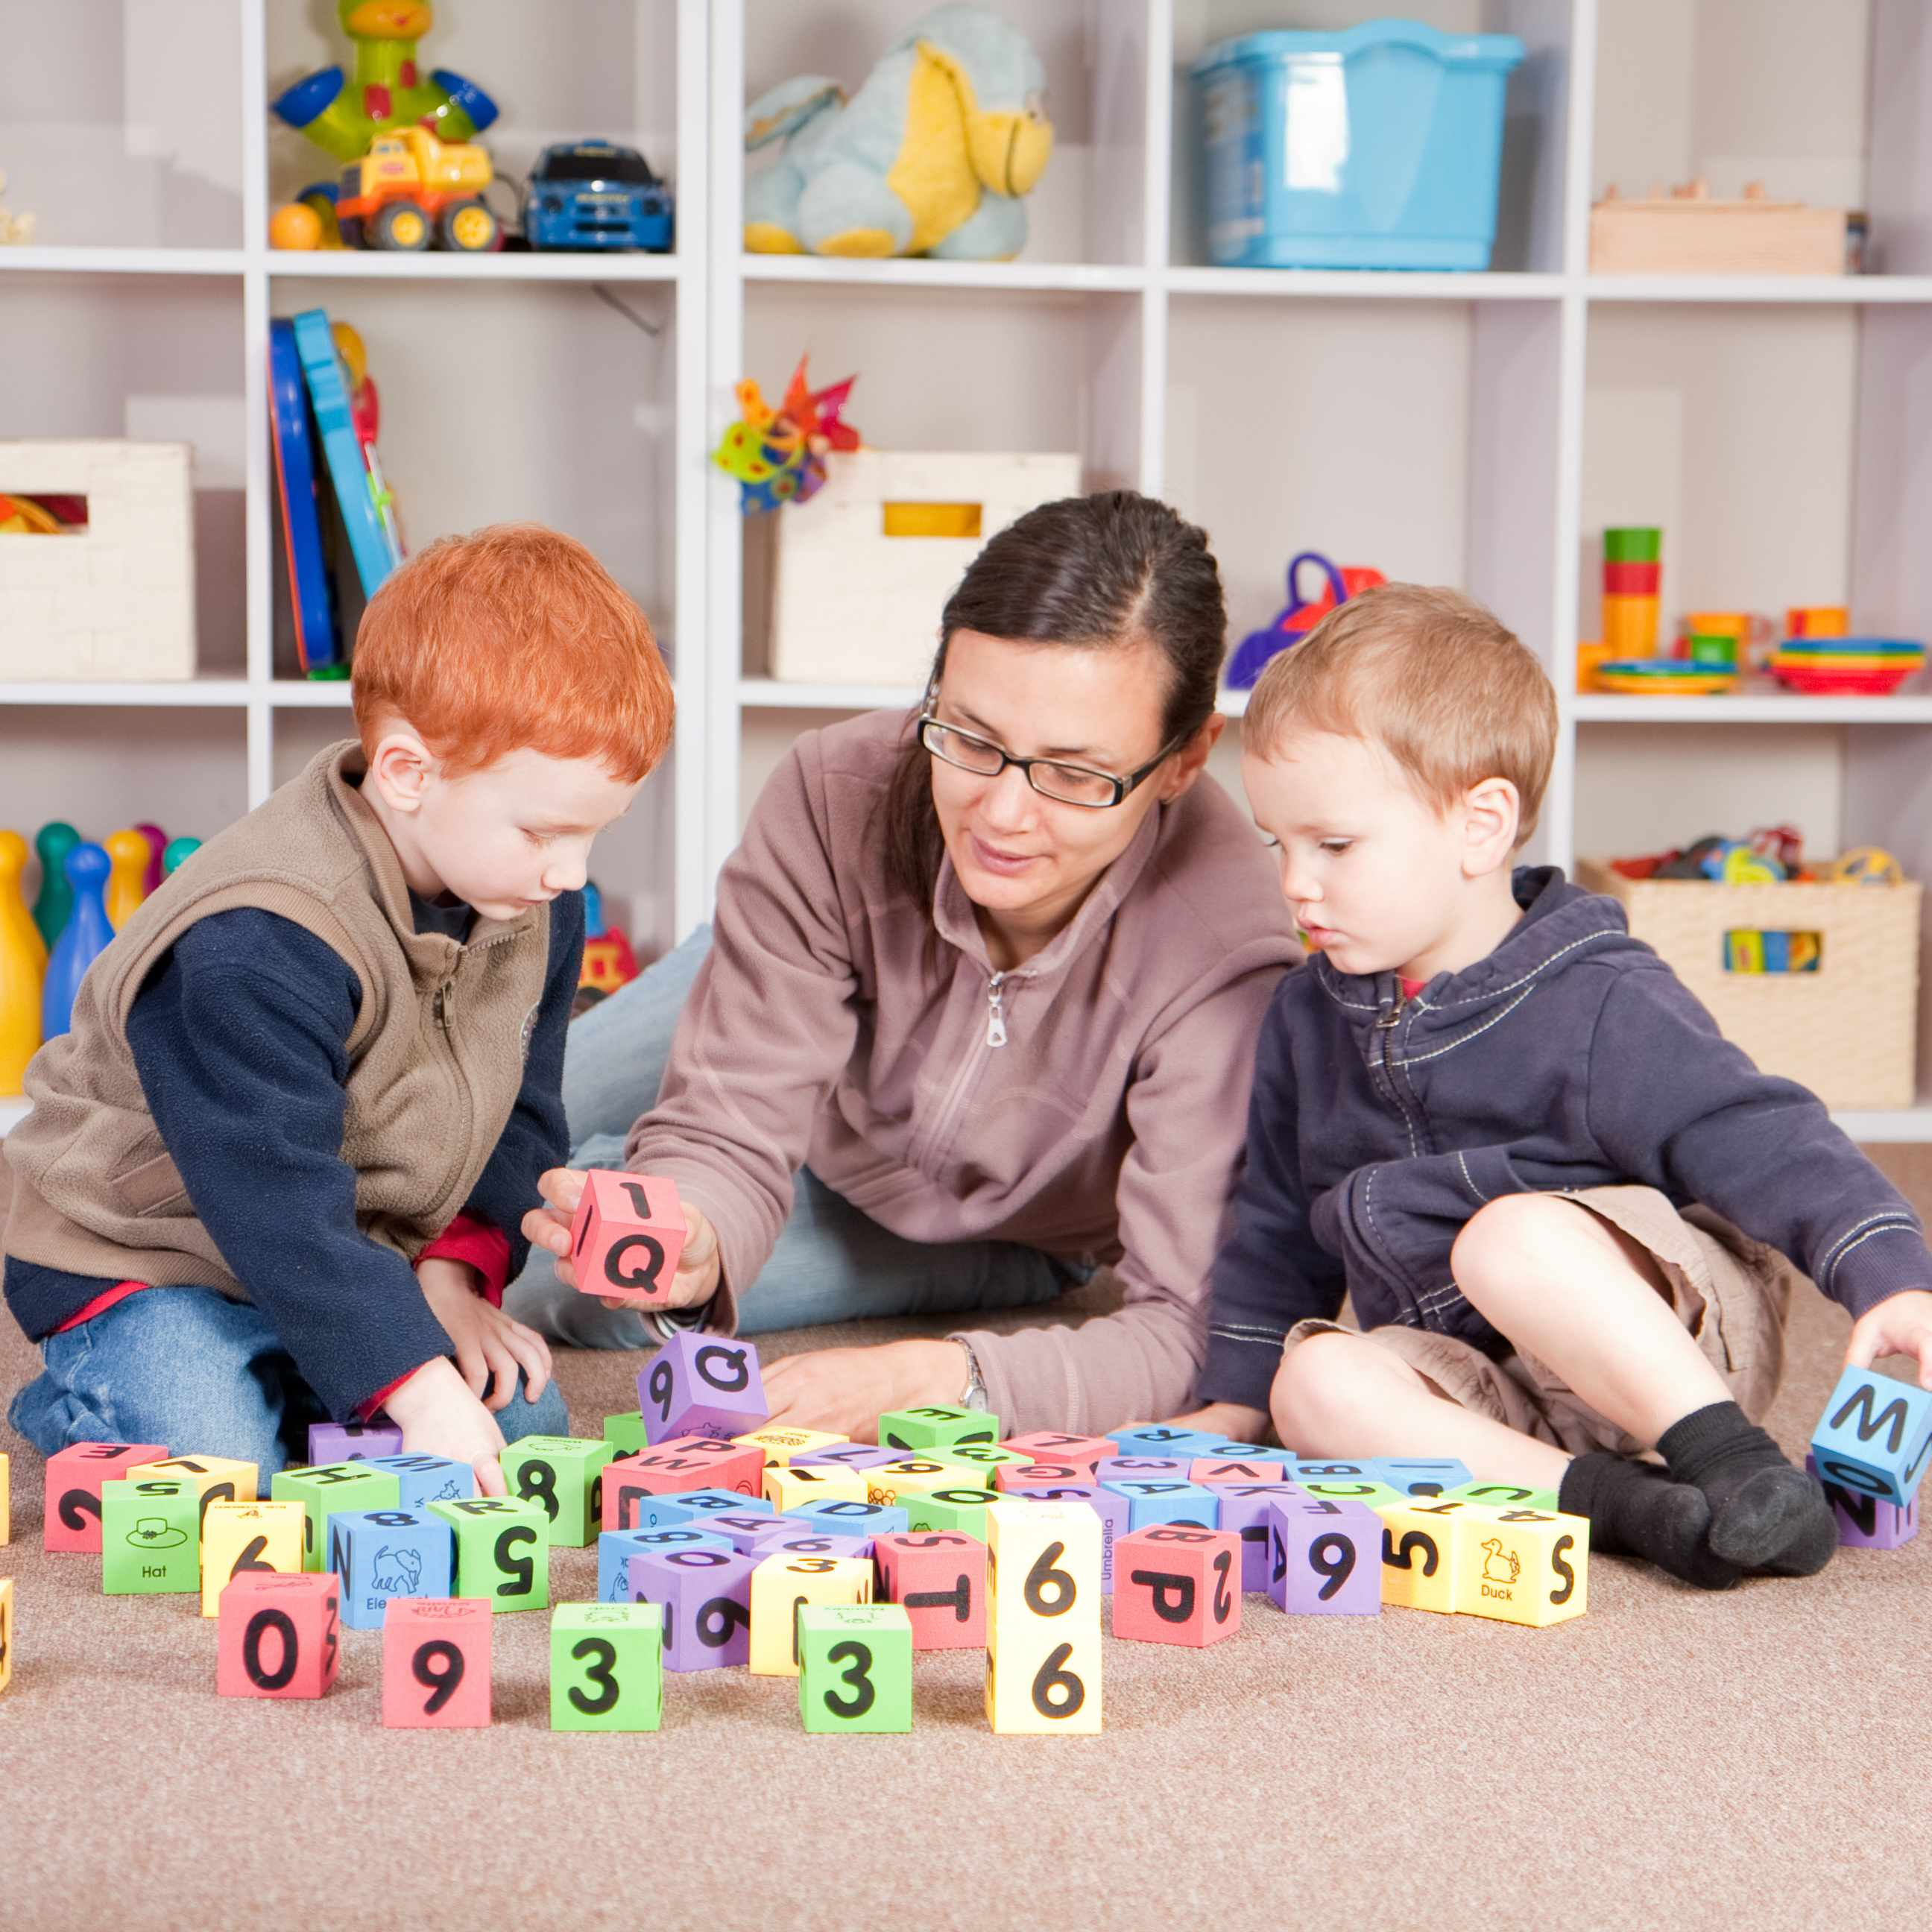 a mother and two young boys playing with blocks in a playroom, with orderly shelves of toys in the background